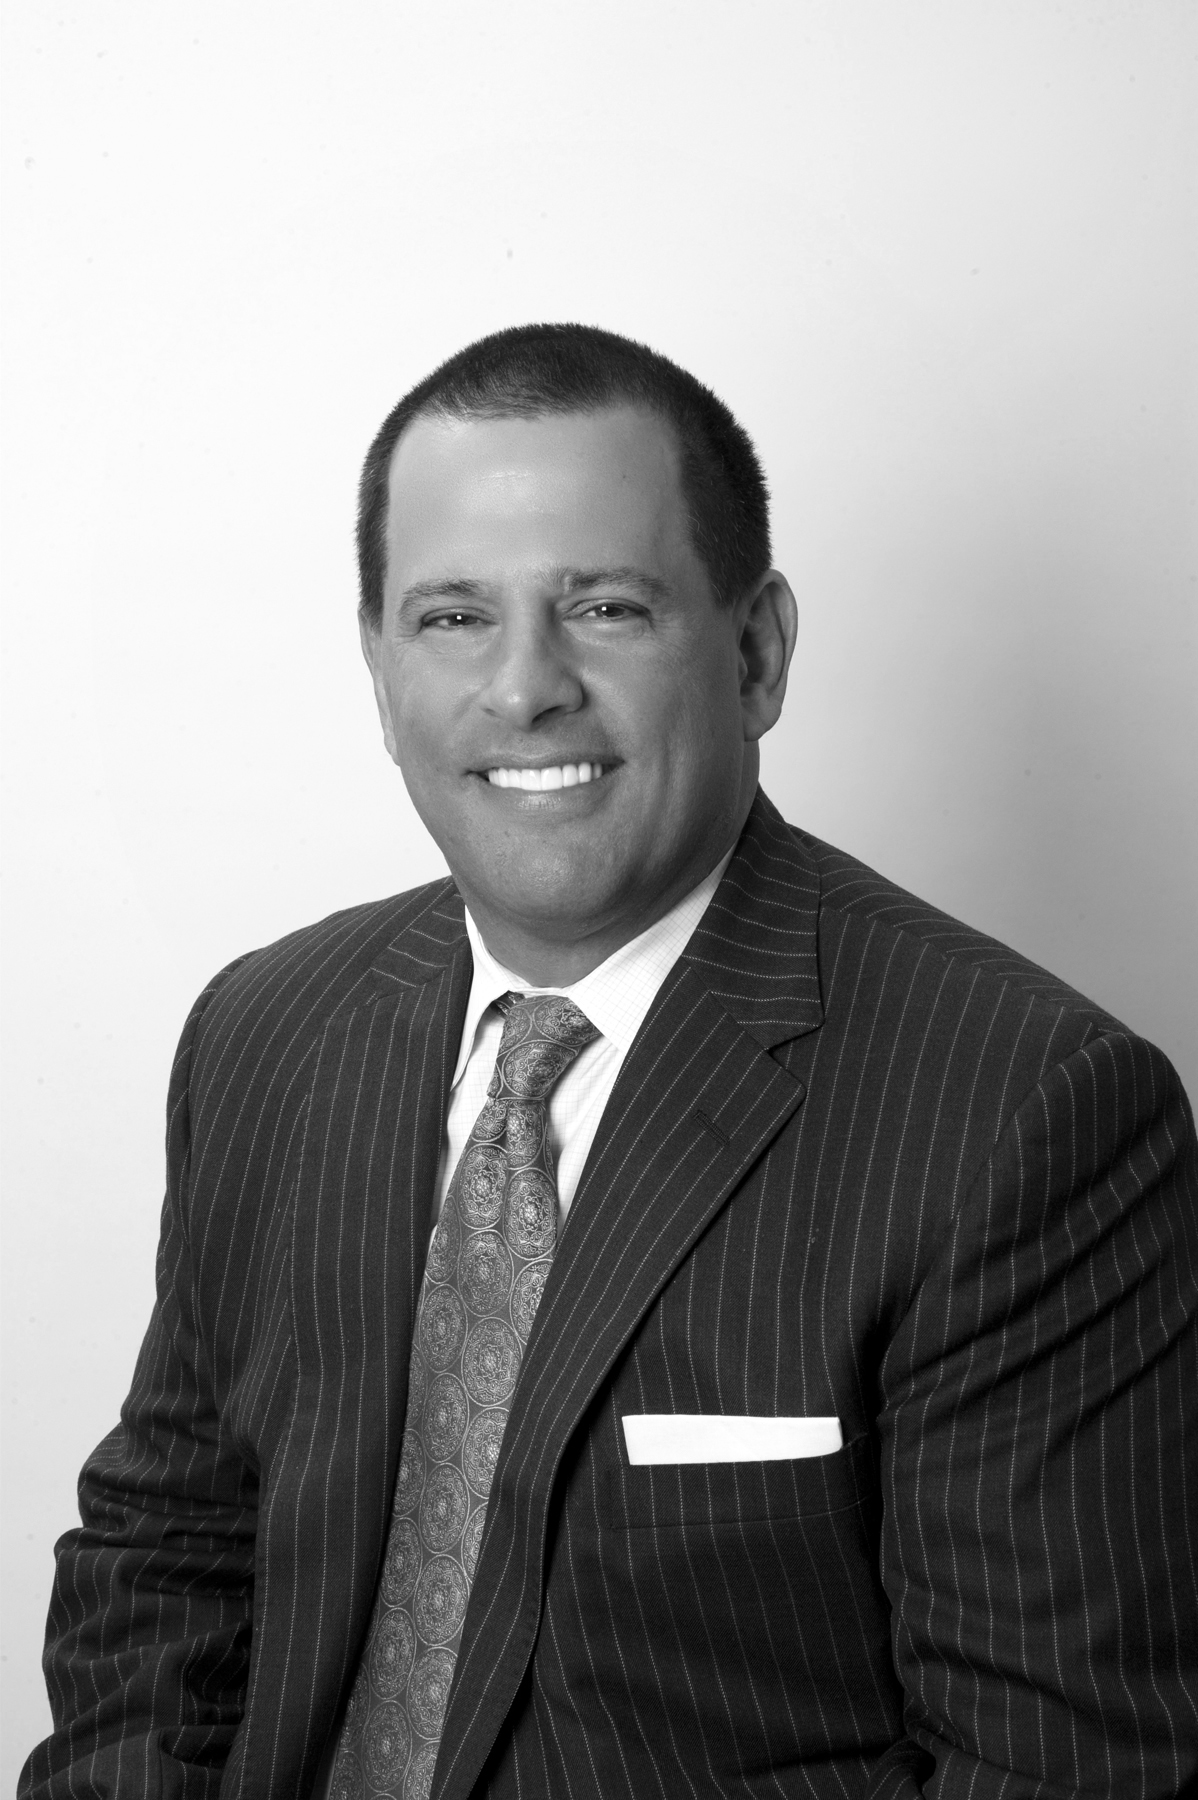 Christopher McMahon, financial advisor Upper Saint Clair PA